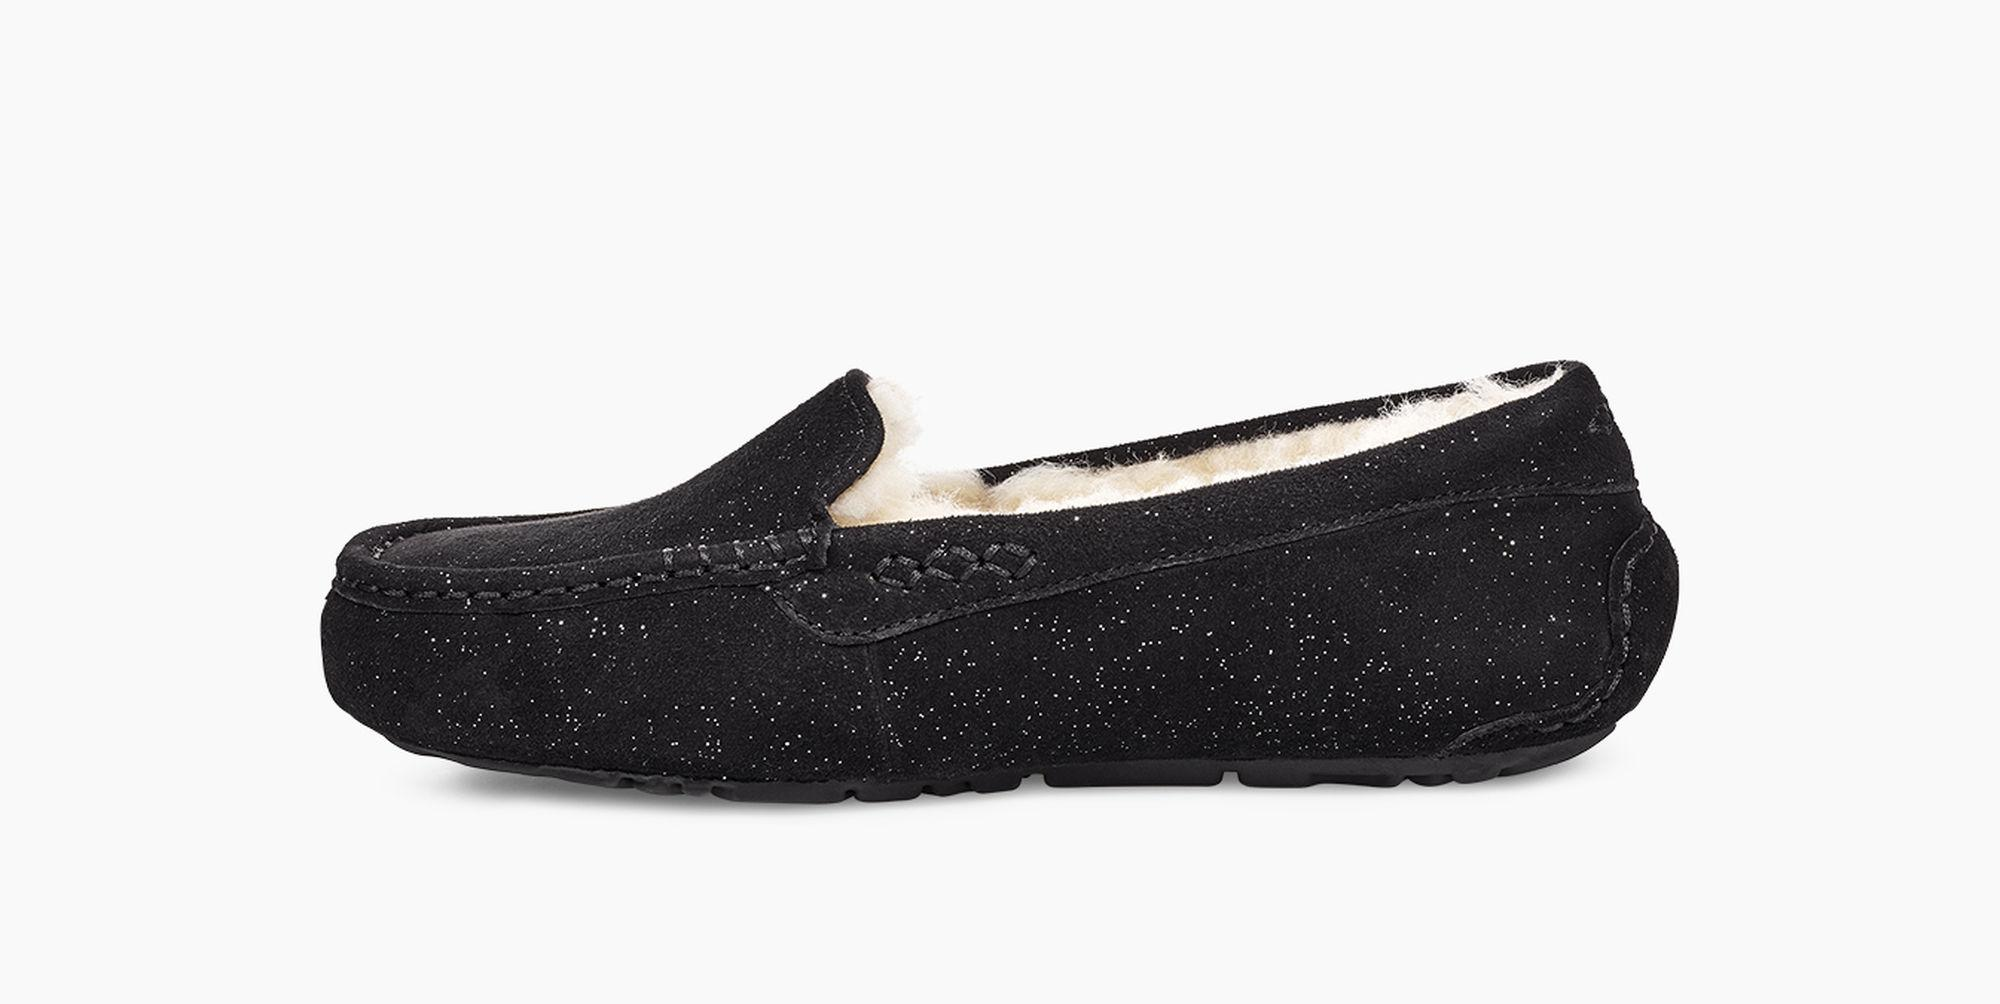 65a431d3983 Ugg Black Ansley Milky Way Ansley Milky Way